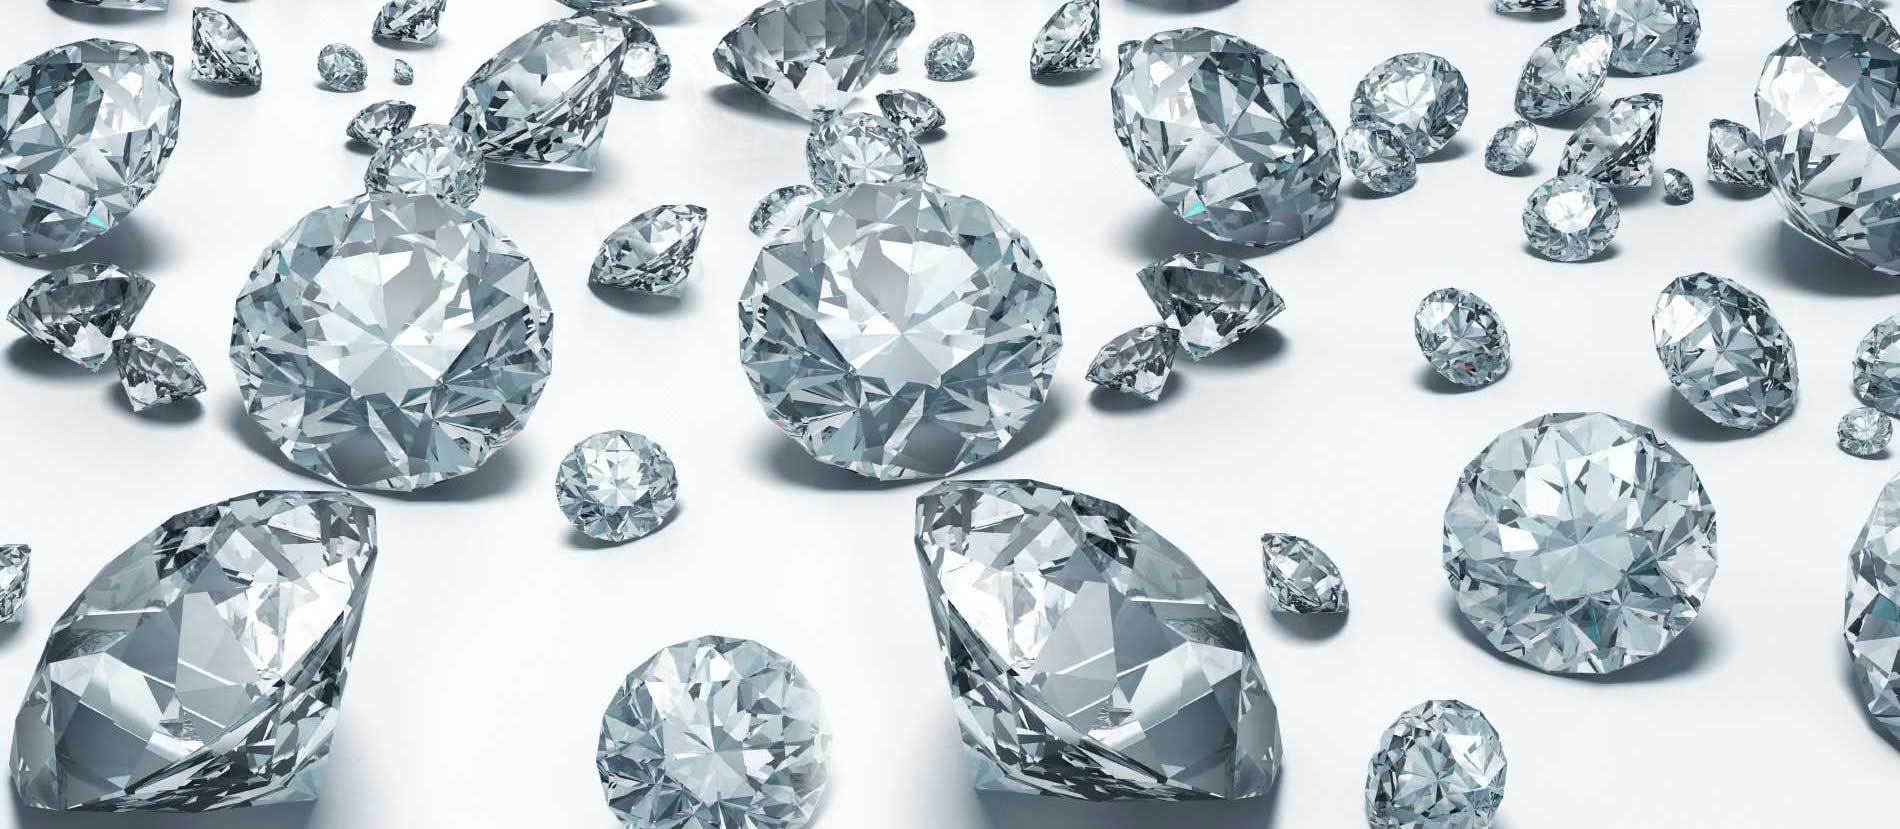 How to Buy a Diamond: Good Diamonds vs Bad Diamonds